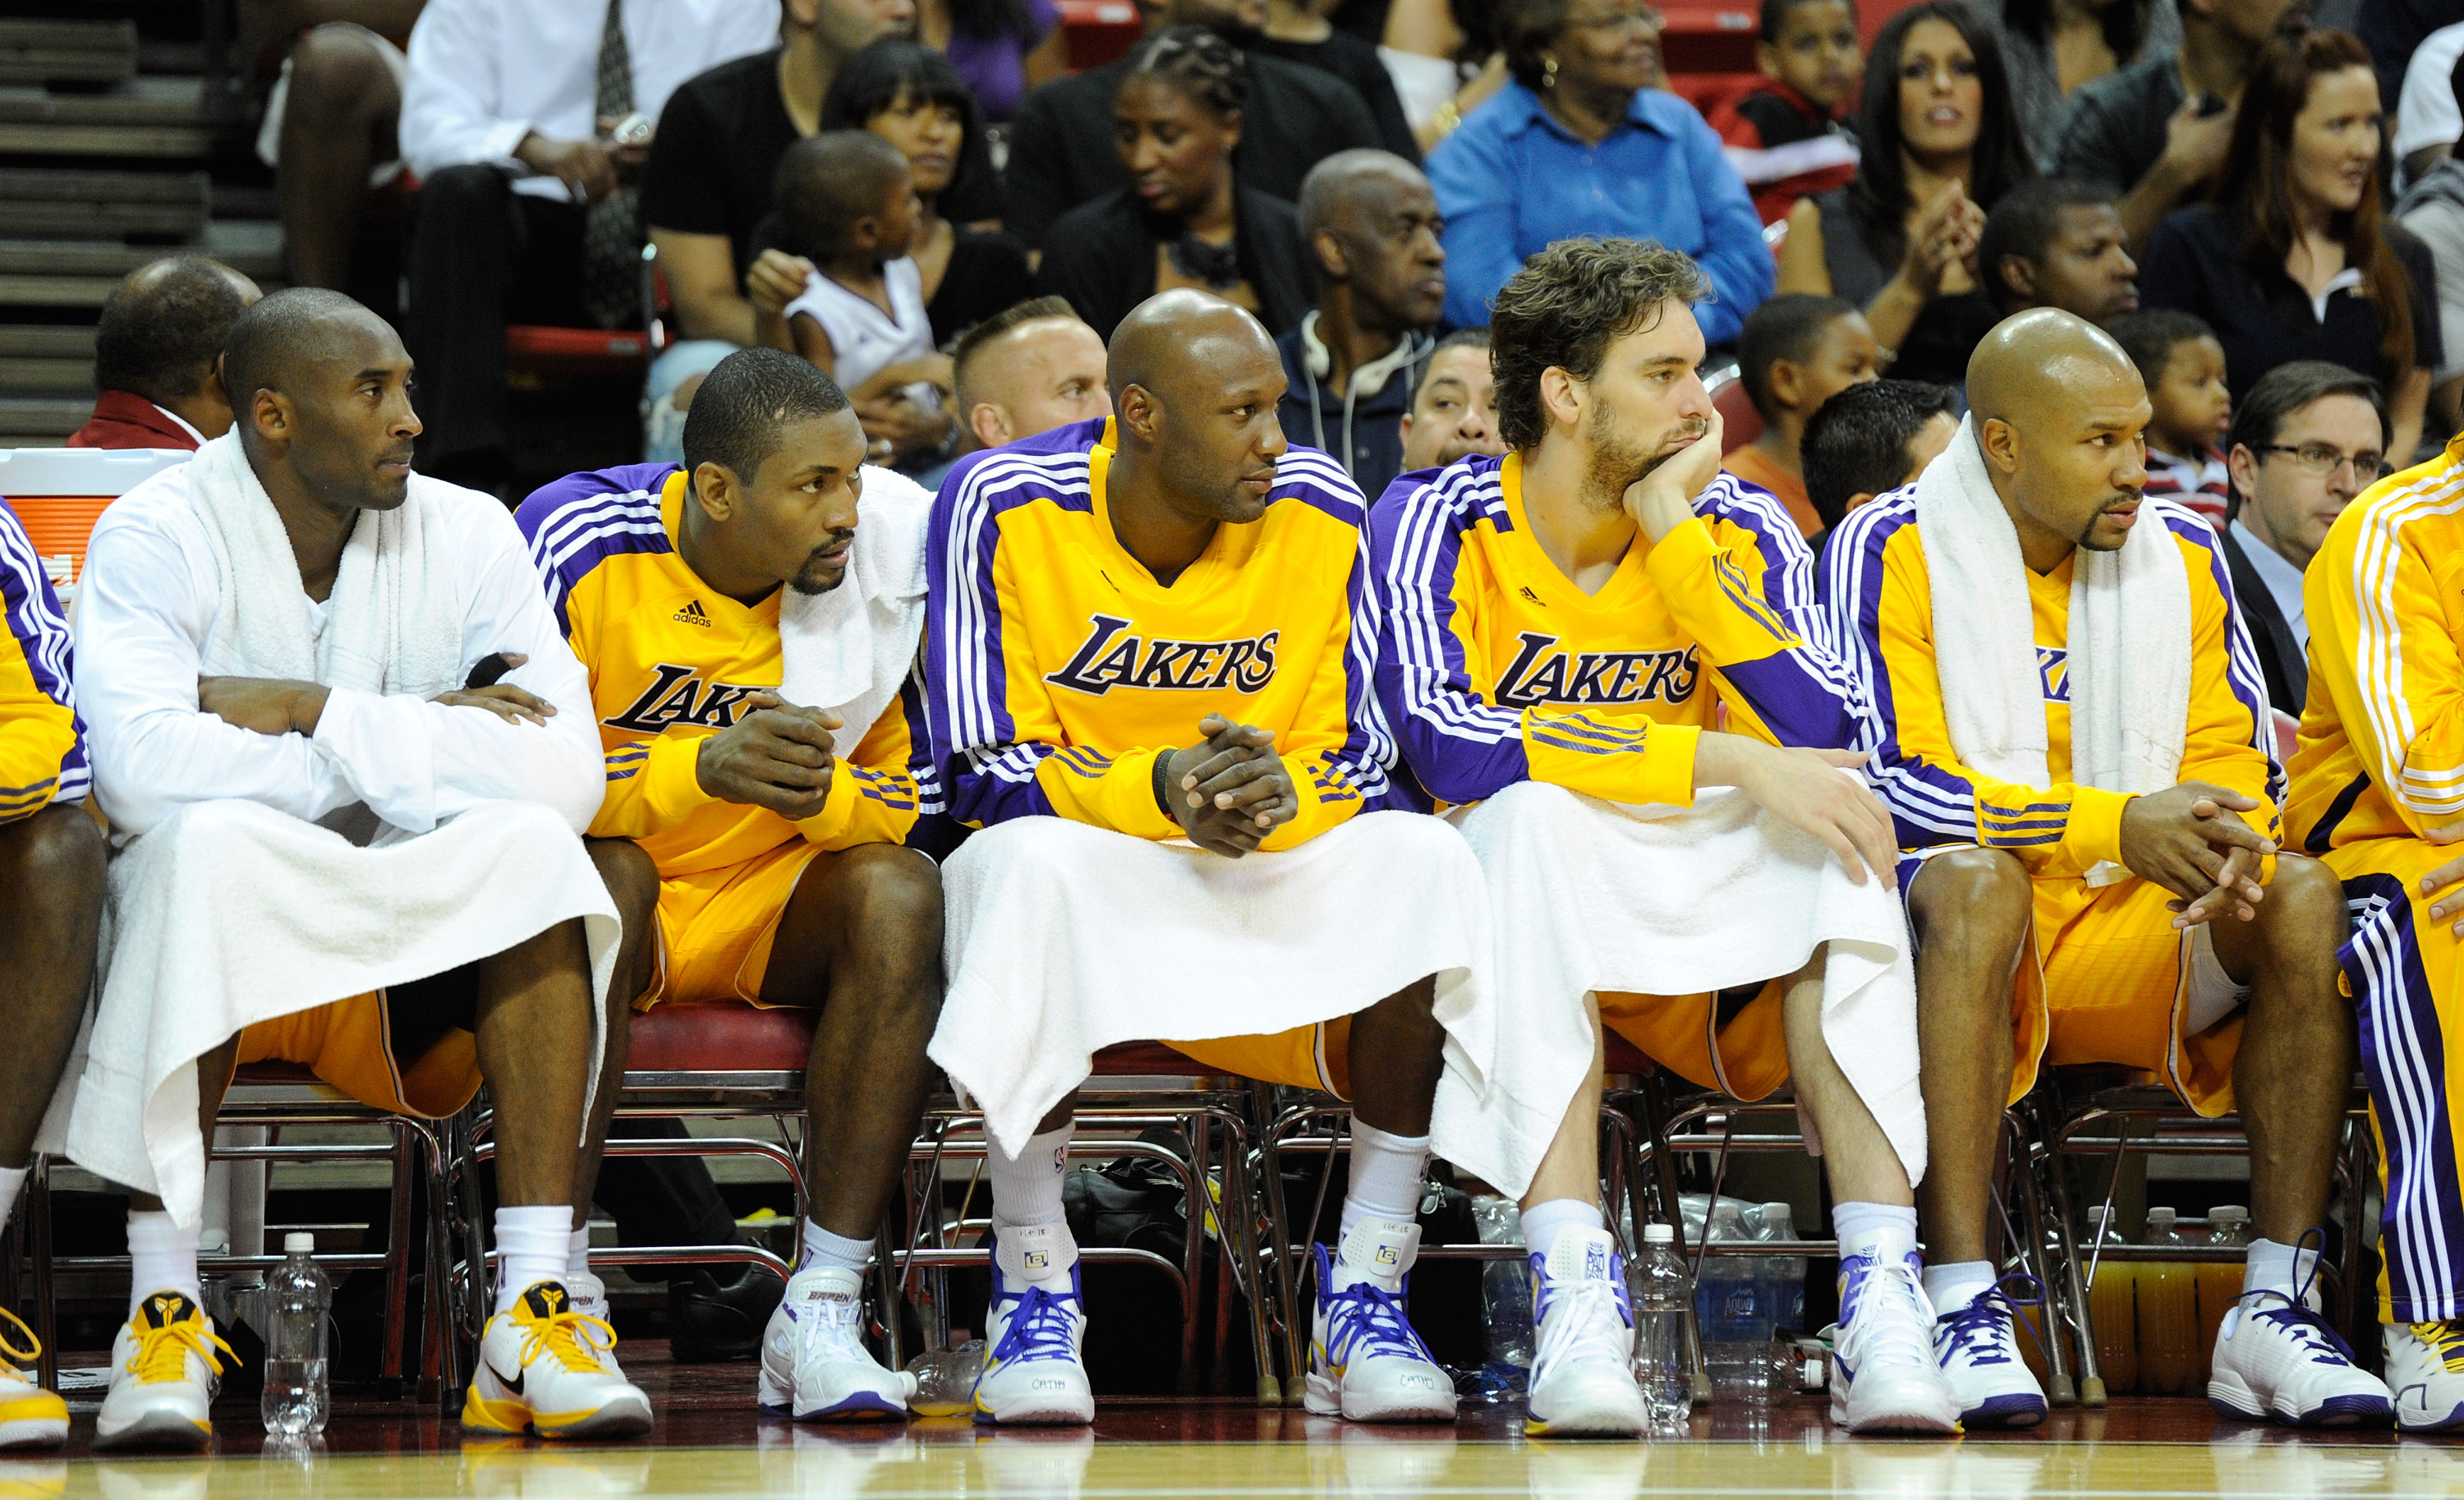 The Lakers core roster group (sans Andrew Bynum)